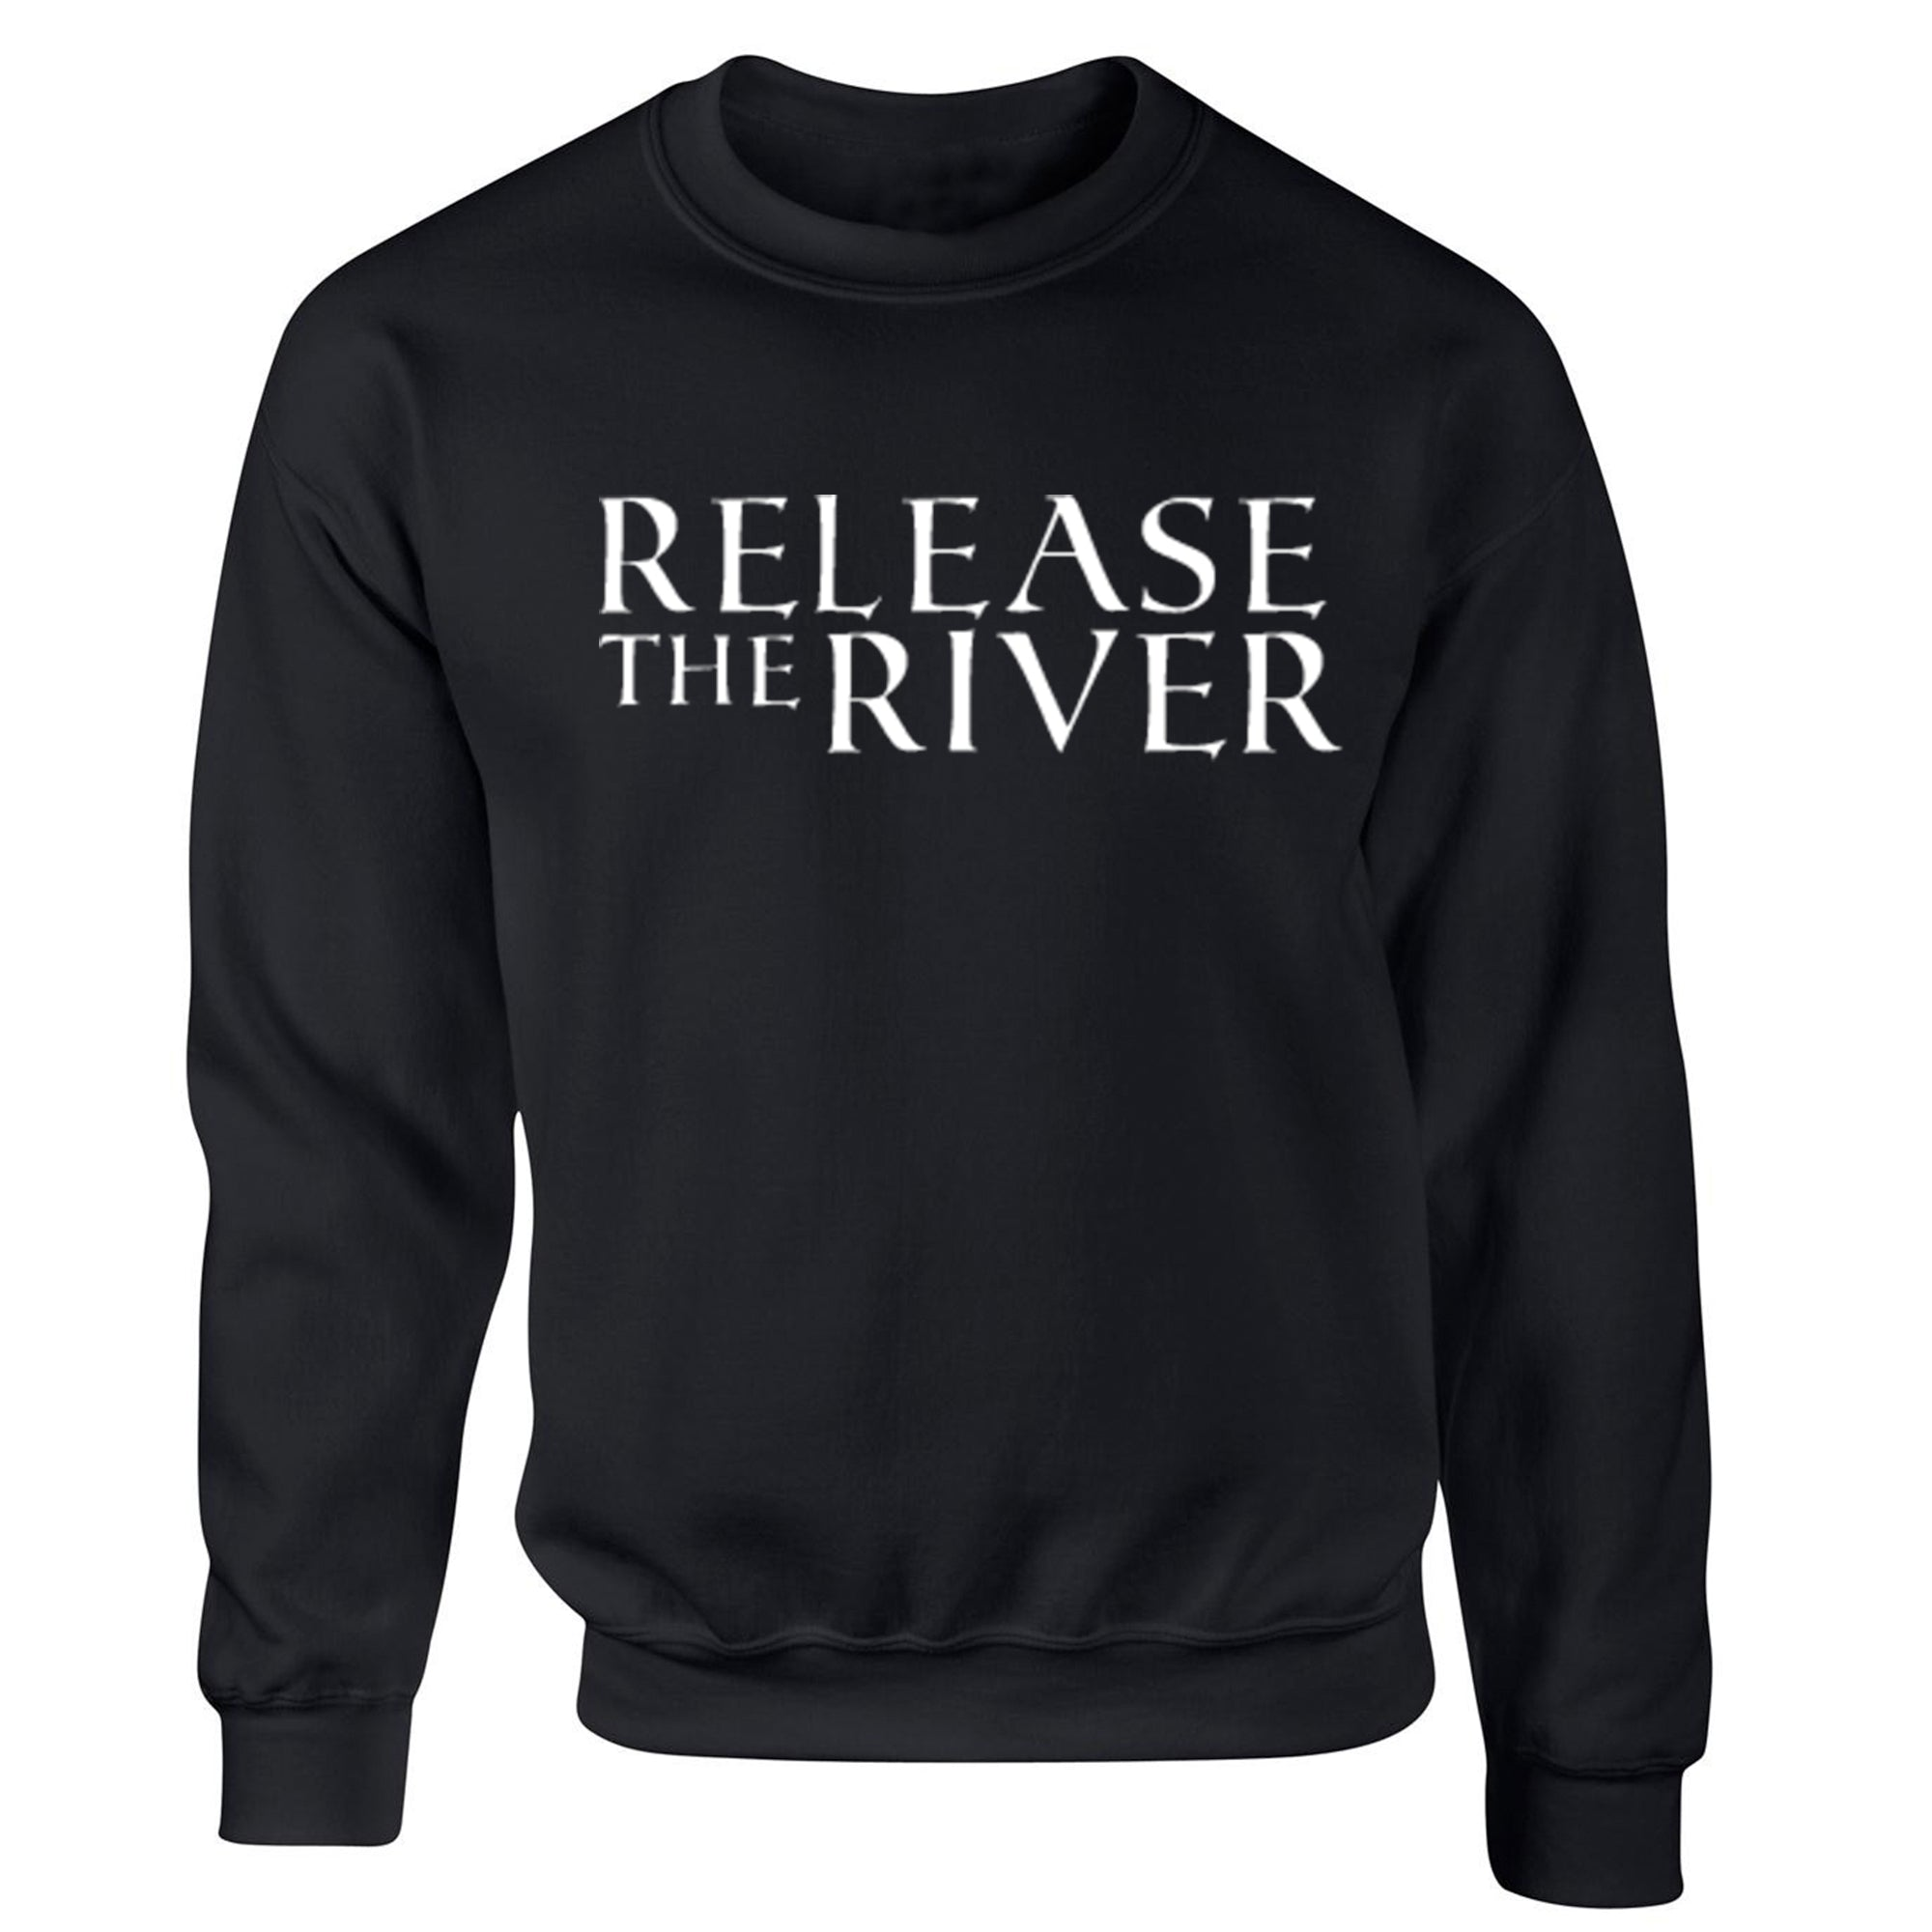 Release The River Unisex Jumper S0287 - Illustrated Identity Ltd.